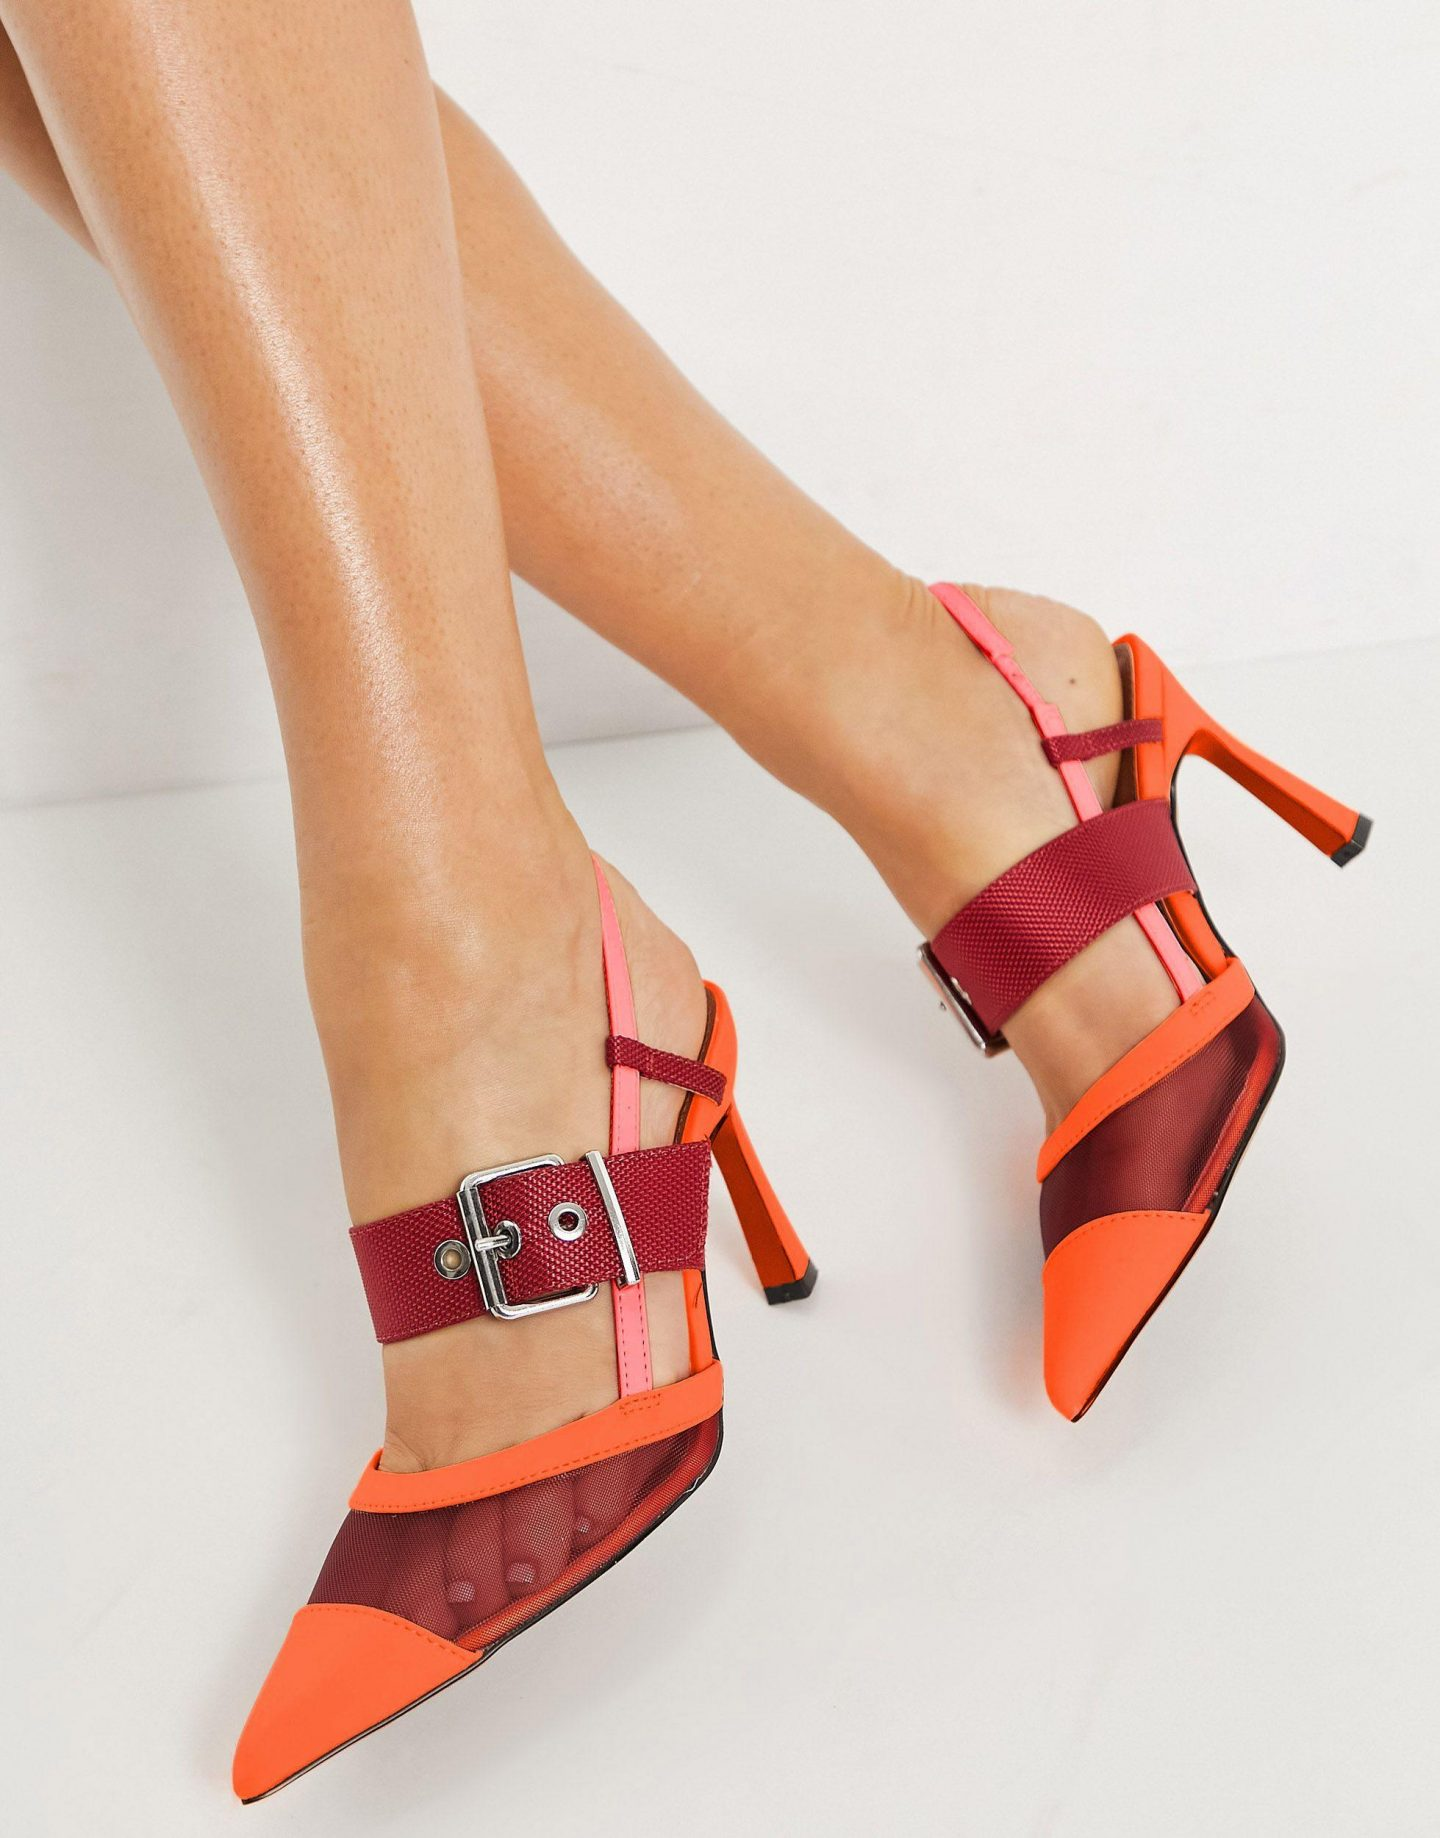 What Color Shoes To Wear With A Yellow Dress: Red and orange slingbacks